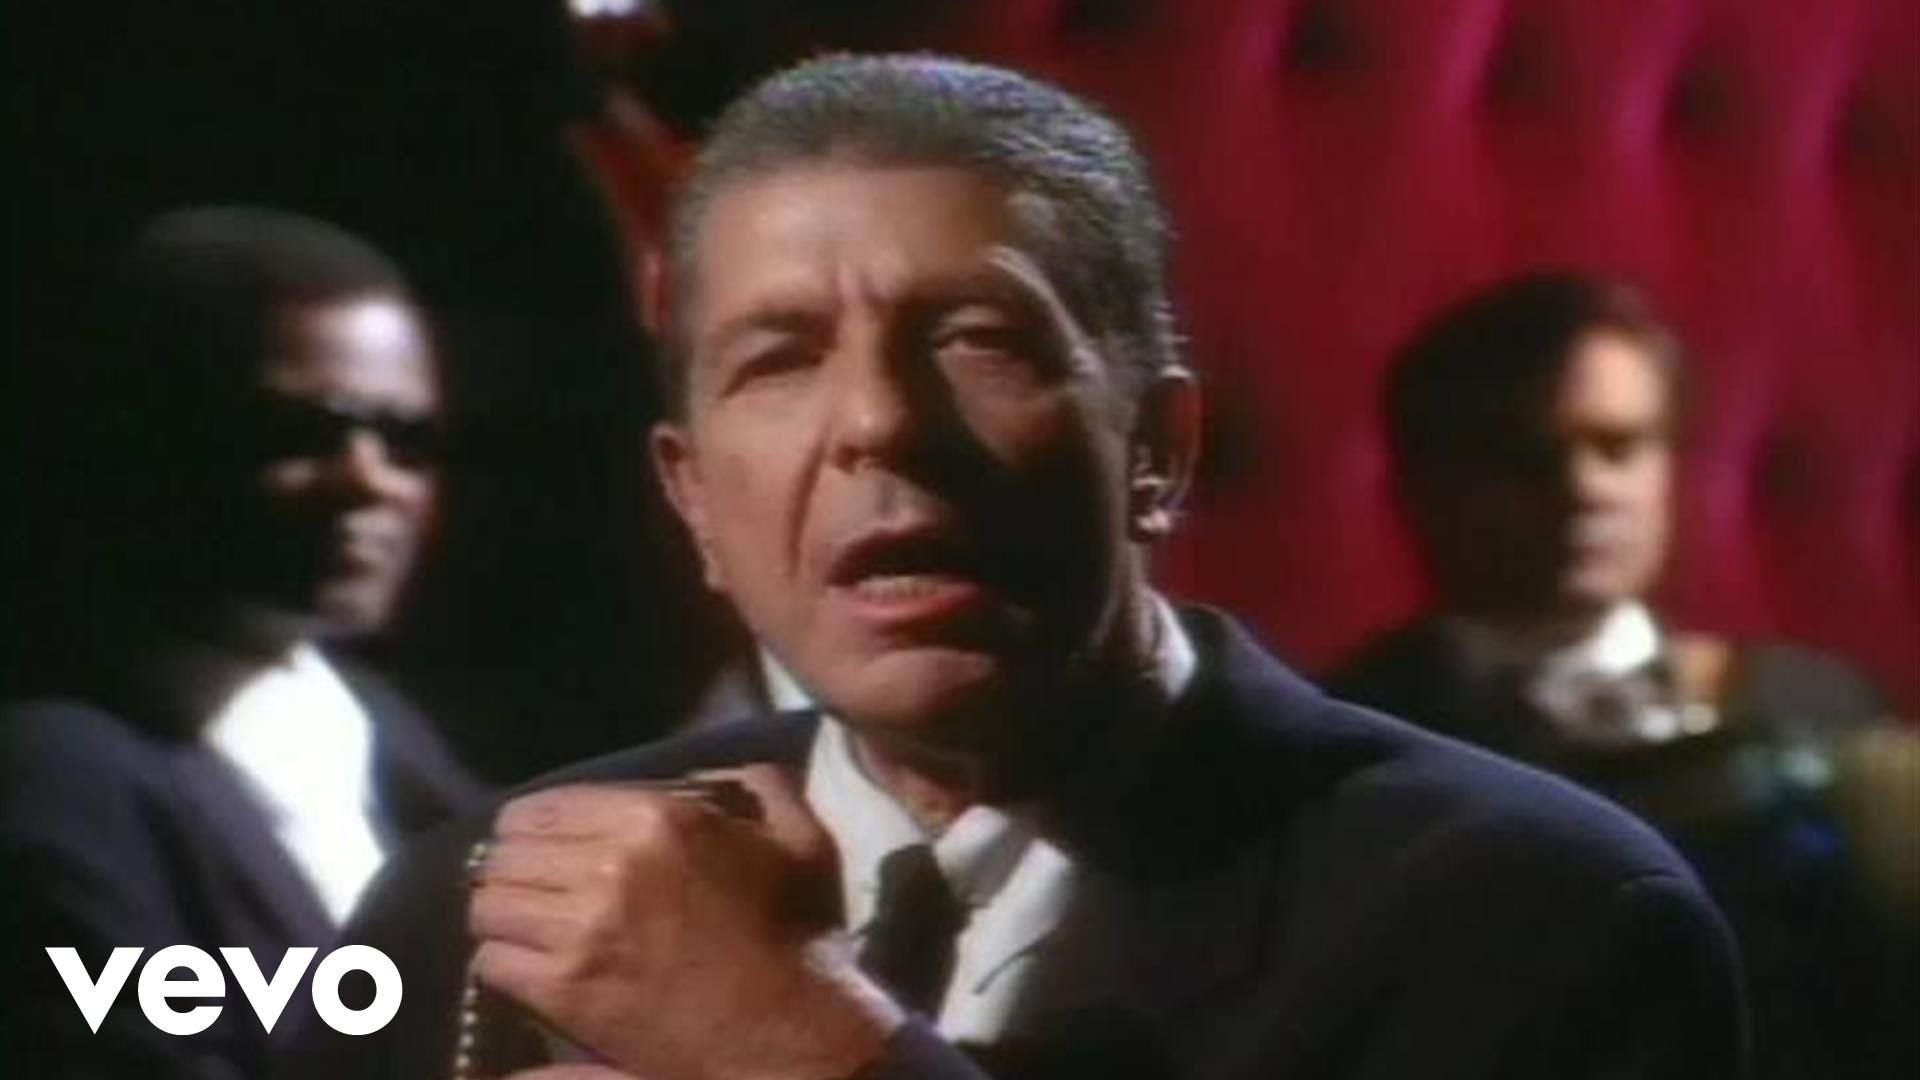 Peliculas Porno De Romina Power Cantante Itañiana leonard cohen - dance me to the end of love | schöne musik